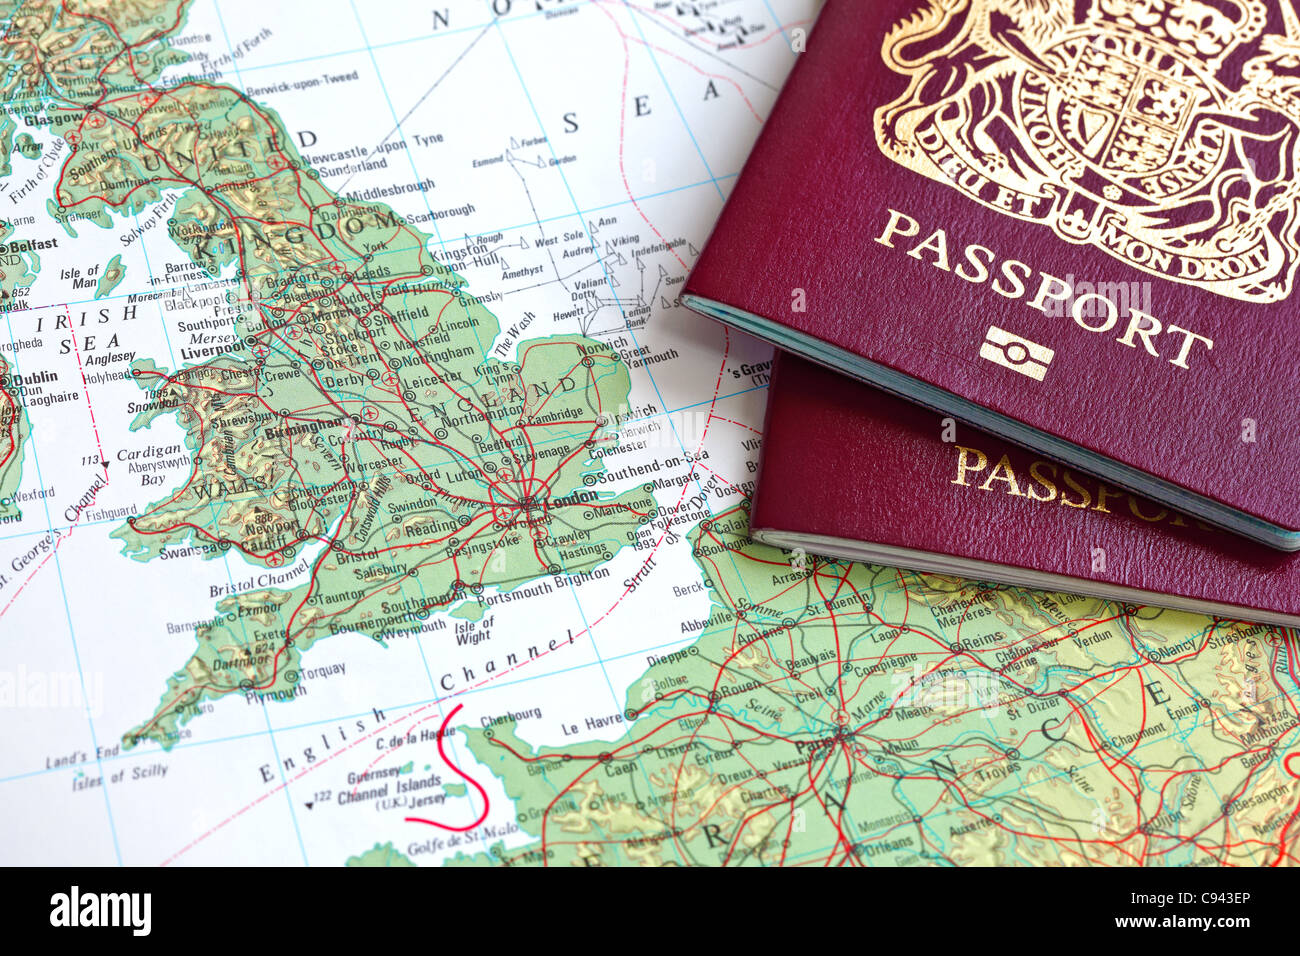 Travel - Stock Image